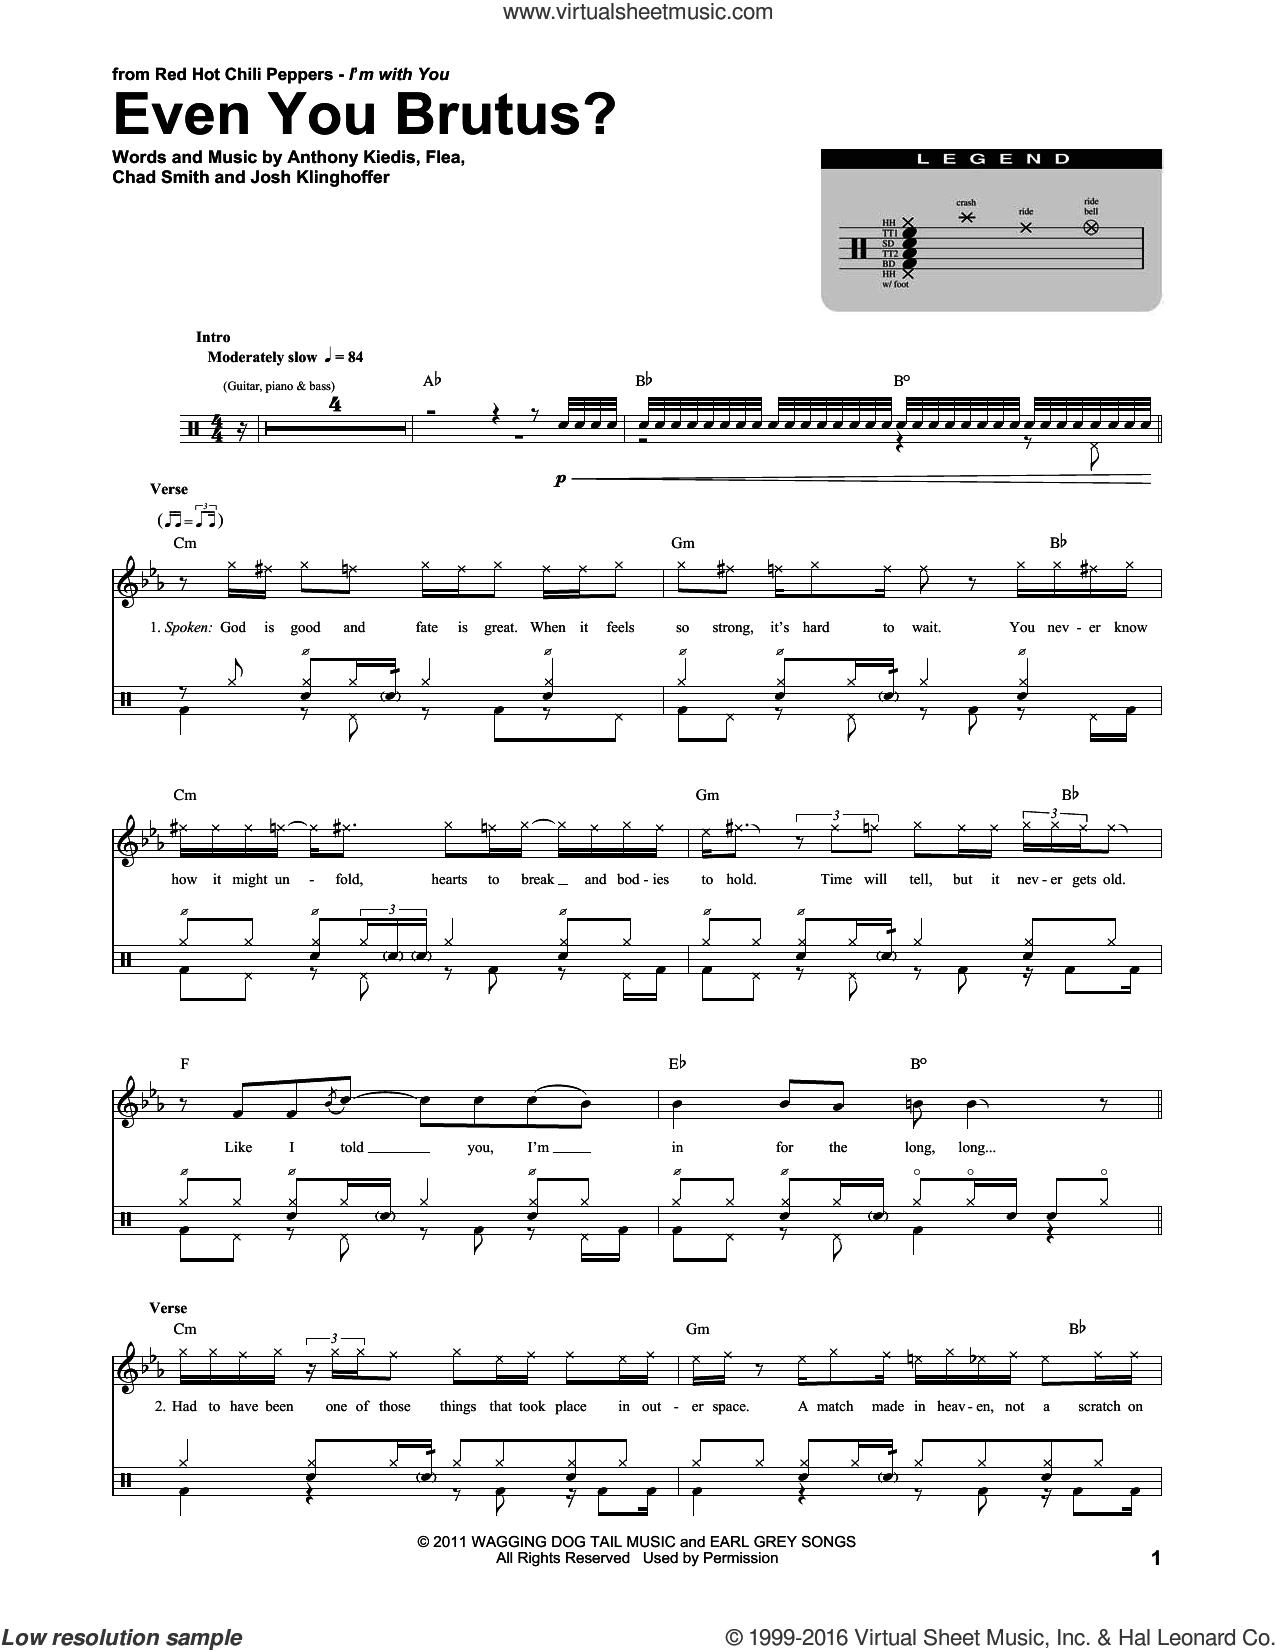 Even You Brutus? sheet music for drums by Red Hot Chili Peppers. Score Image Preview.